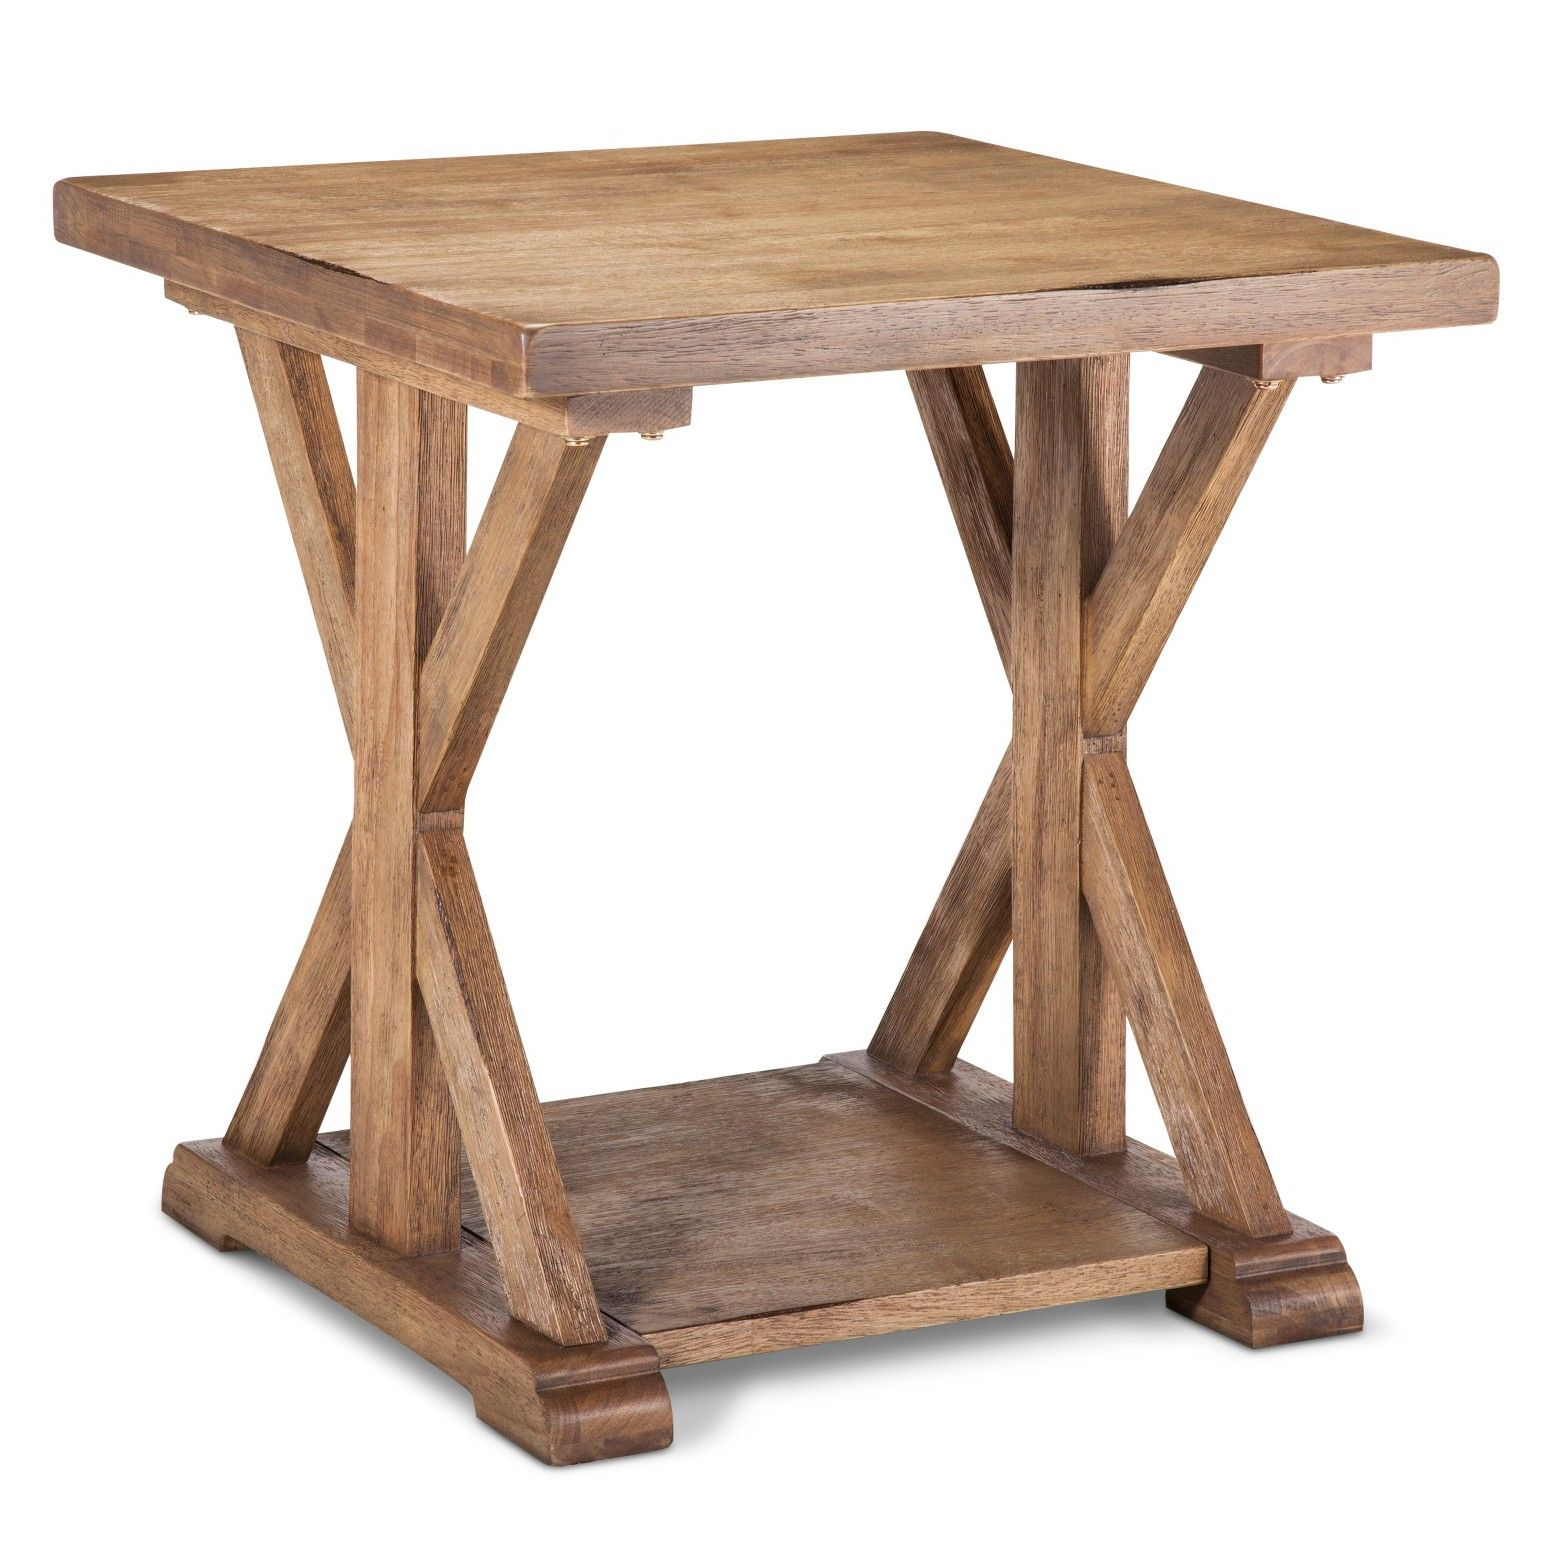 Best Add Warmth To The Room With The Wood Farmhouse End Table 640 x 480